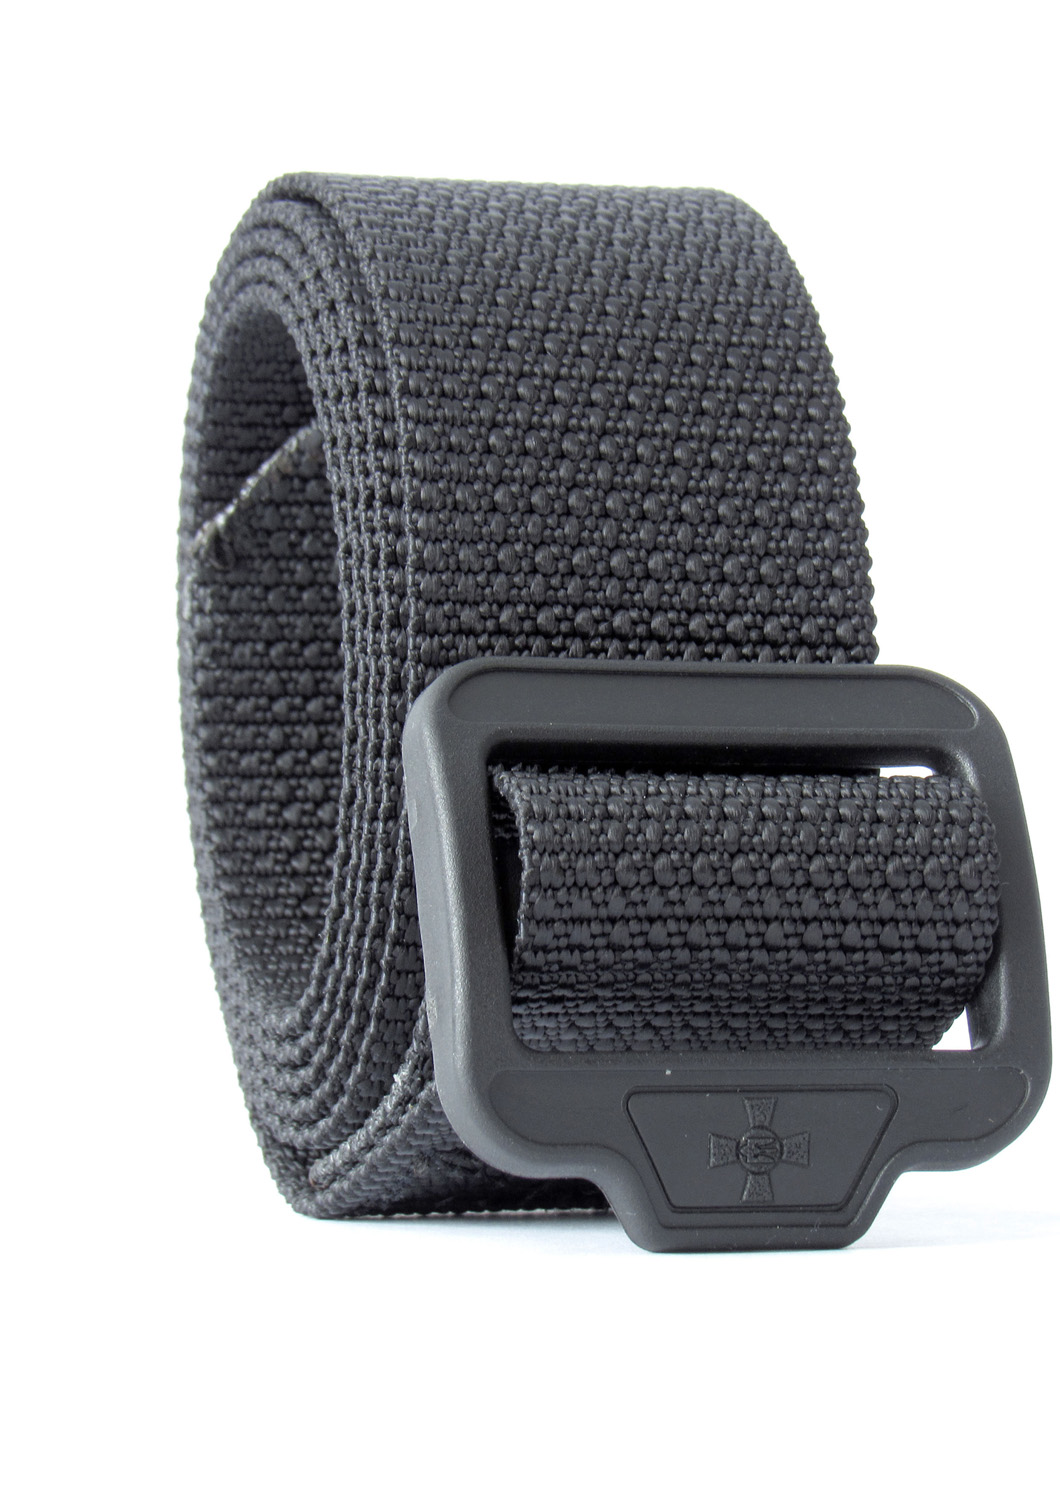 Trouser`s duty belt